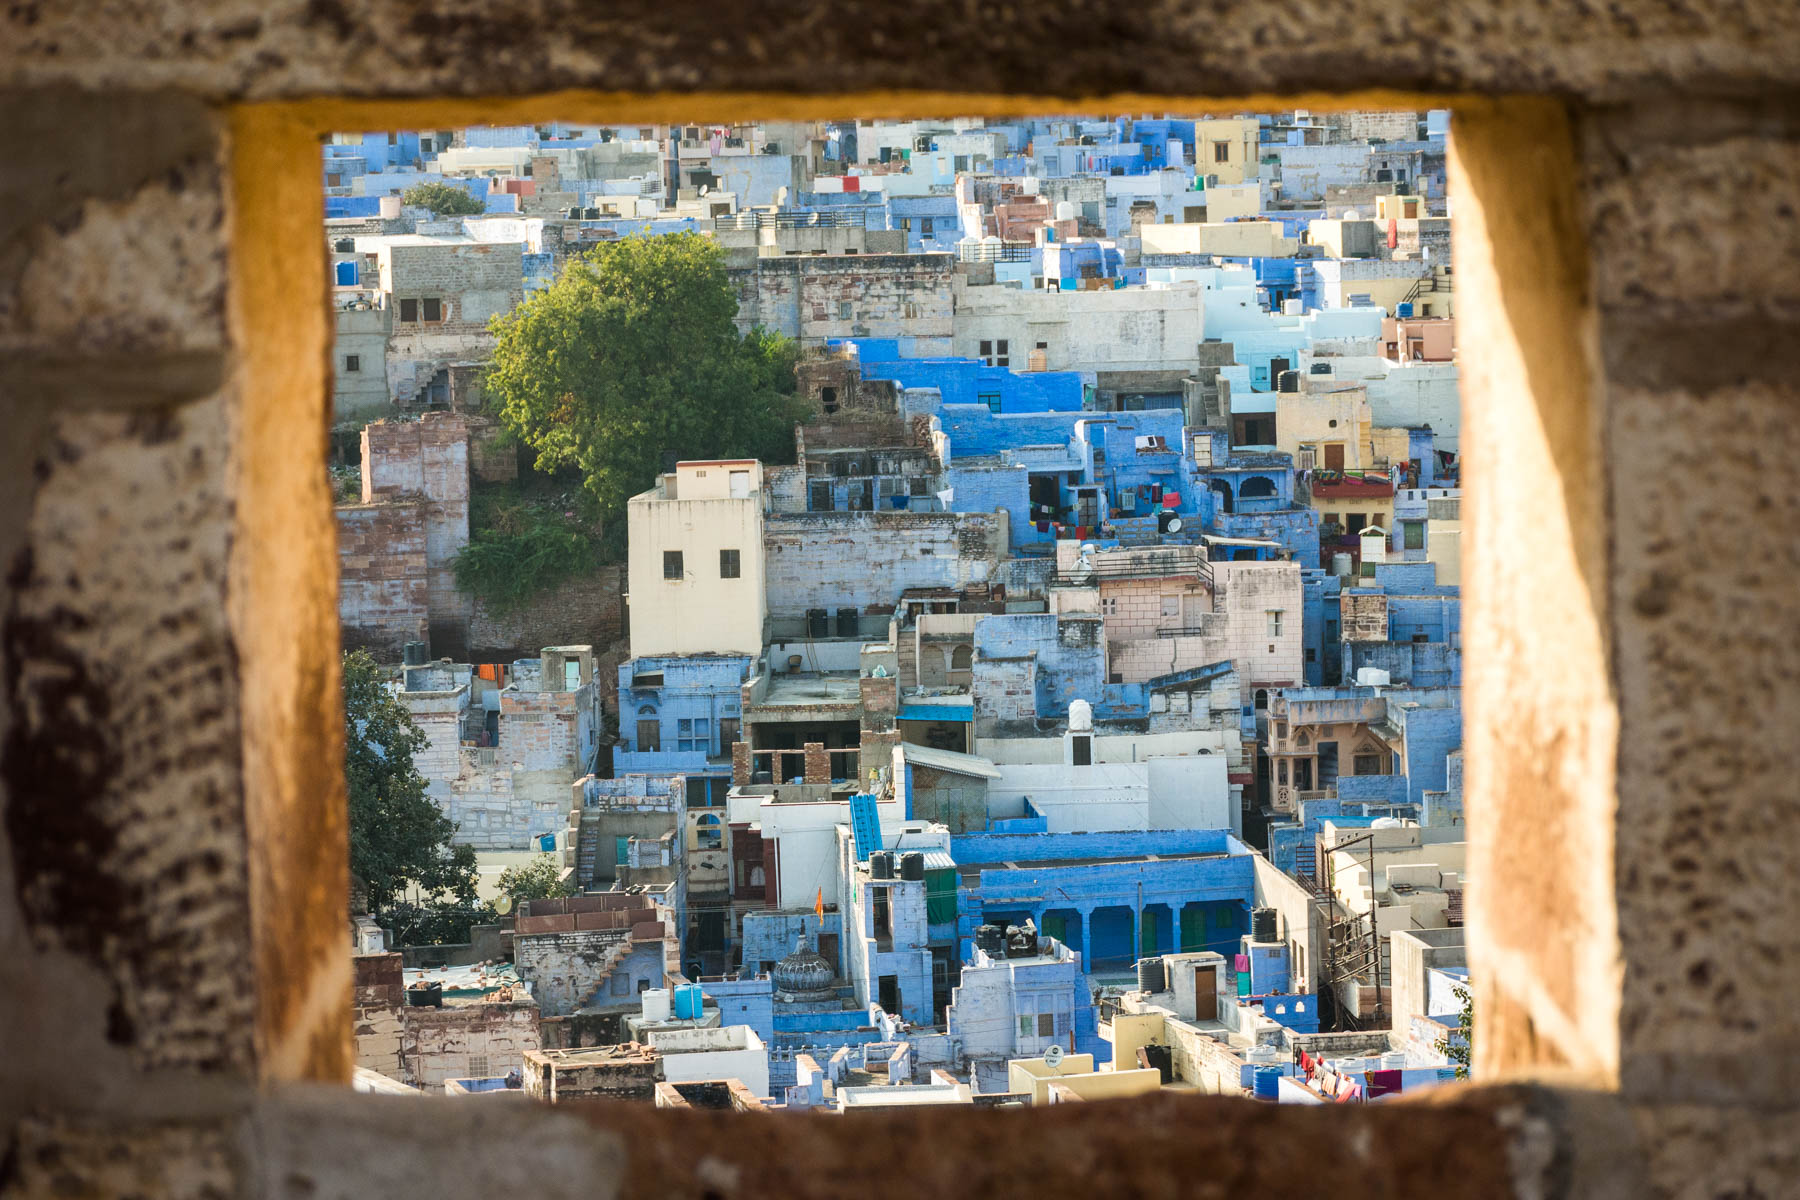 A look through a window of Jodhpur, India